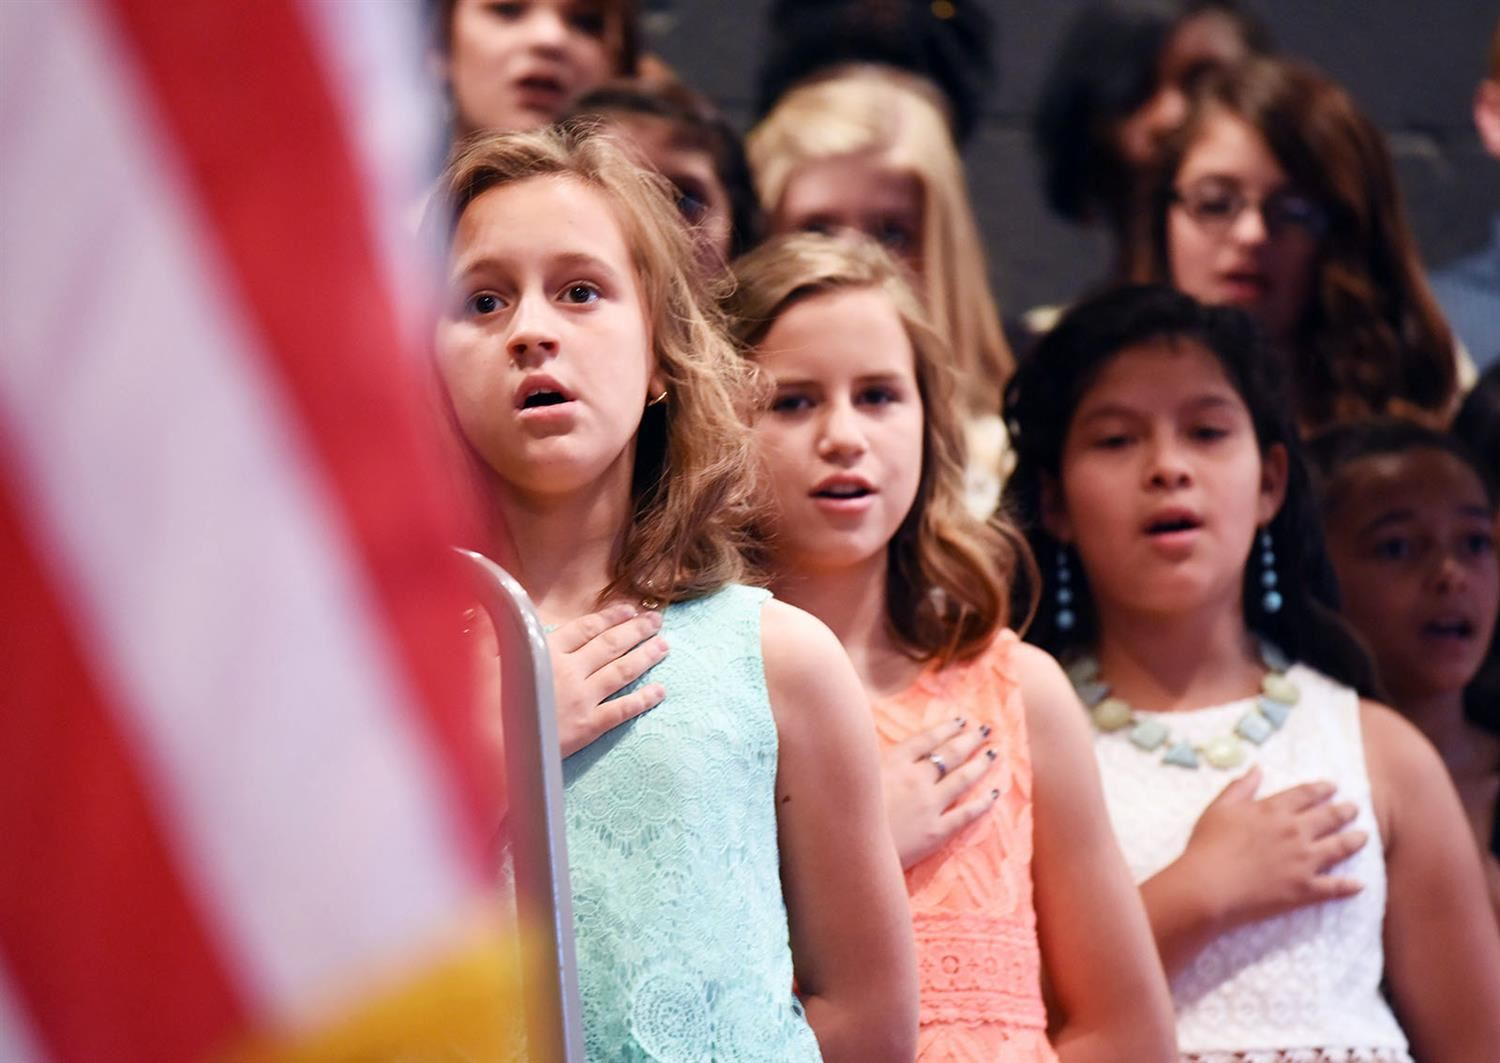 5th graders pledge allegiance during graduation ceremony